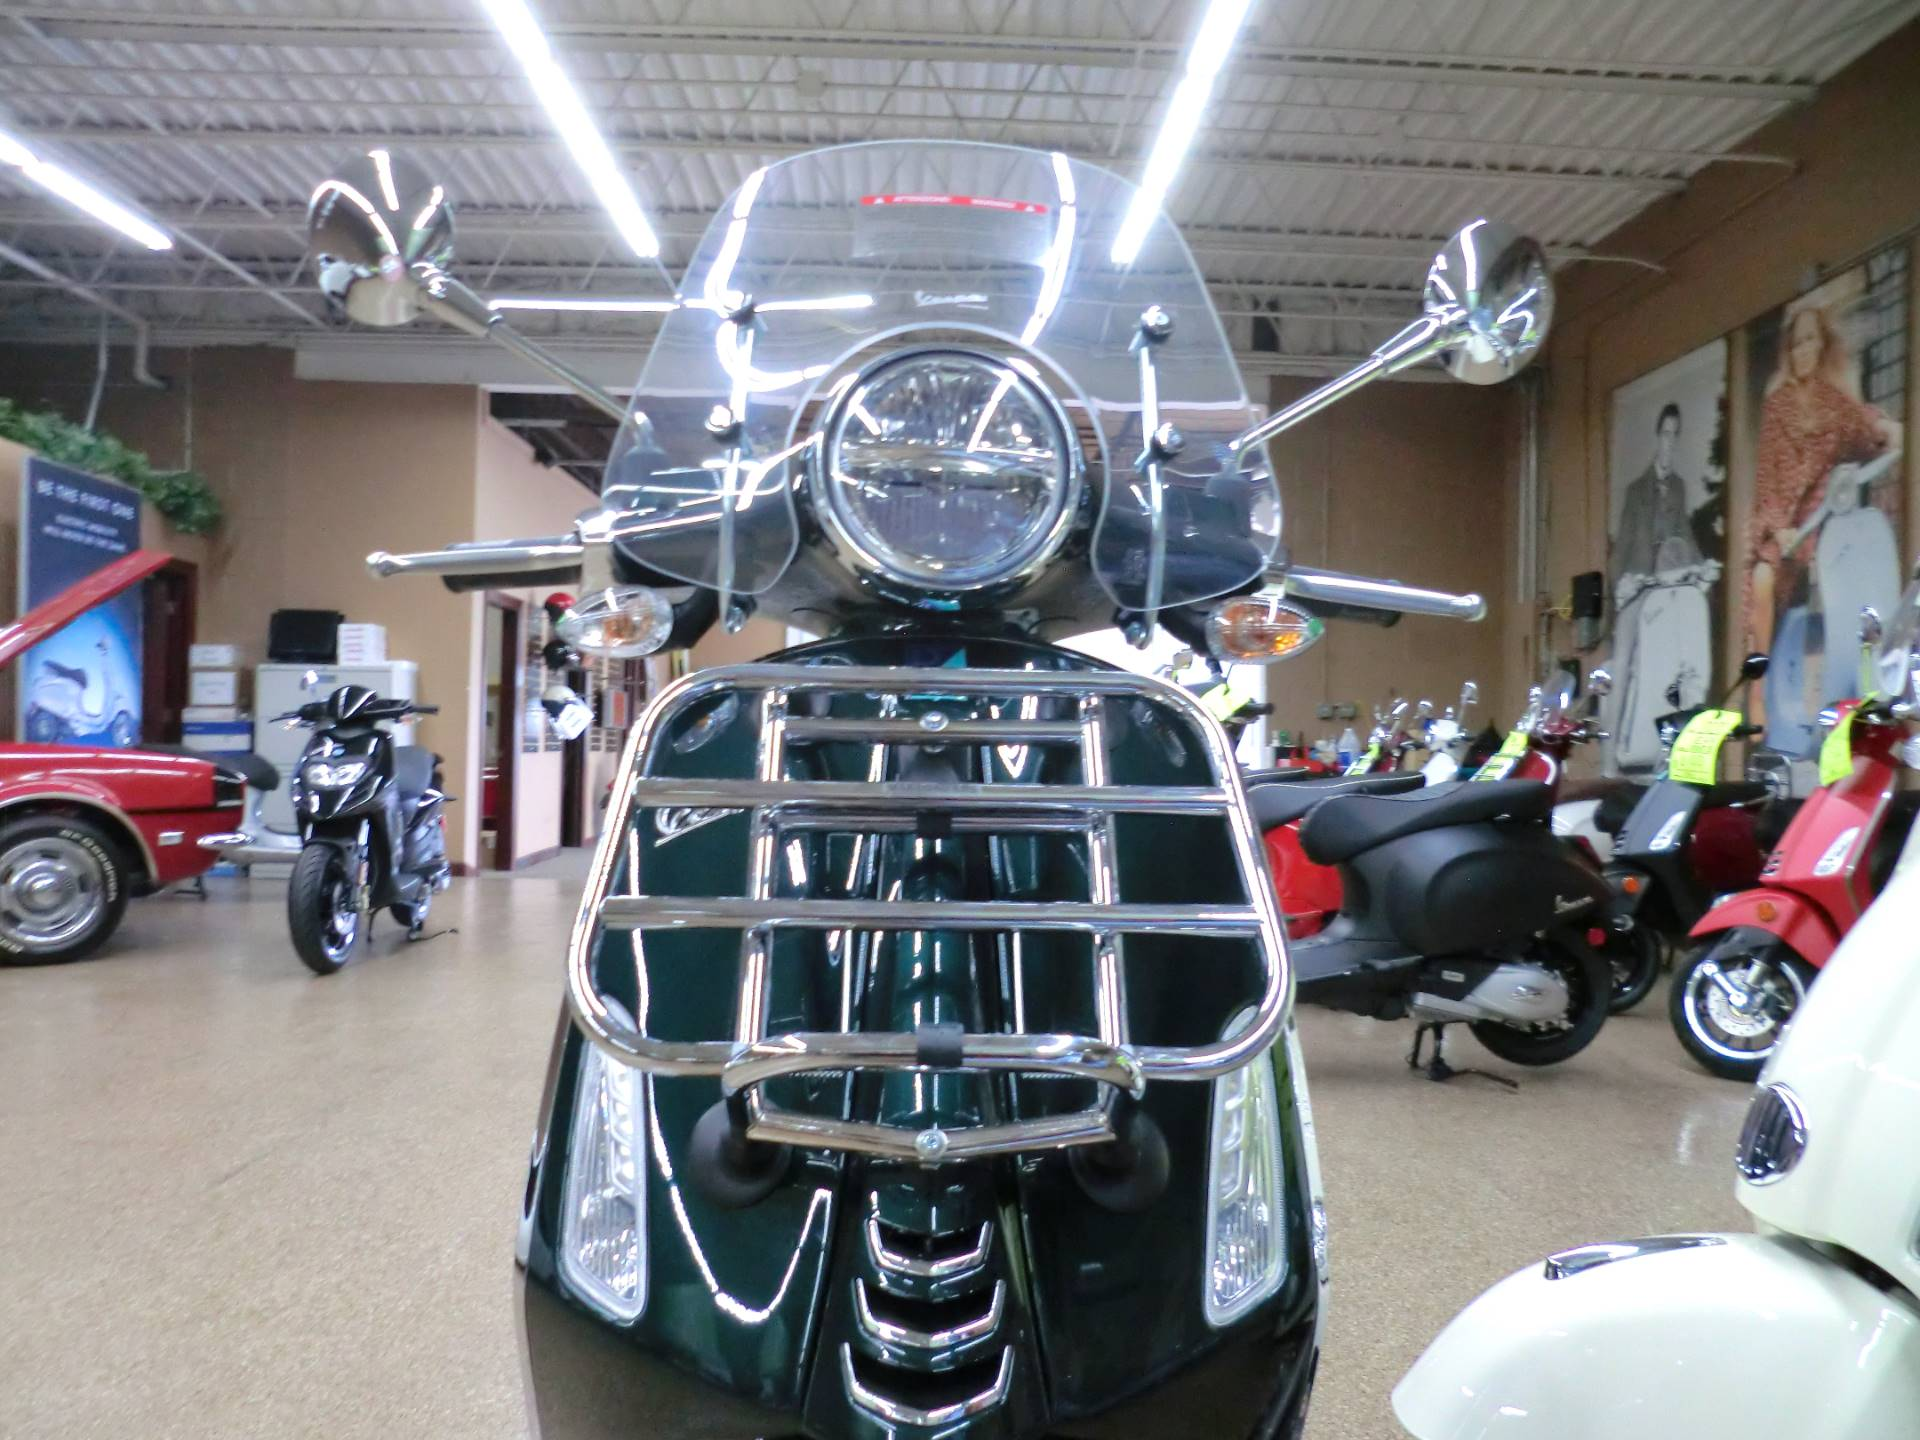 2020 Vespa Primavera Touring 150 in Downers Grove, Illinois - Photo 2